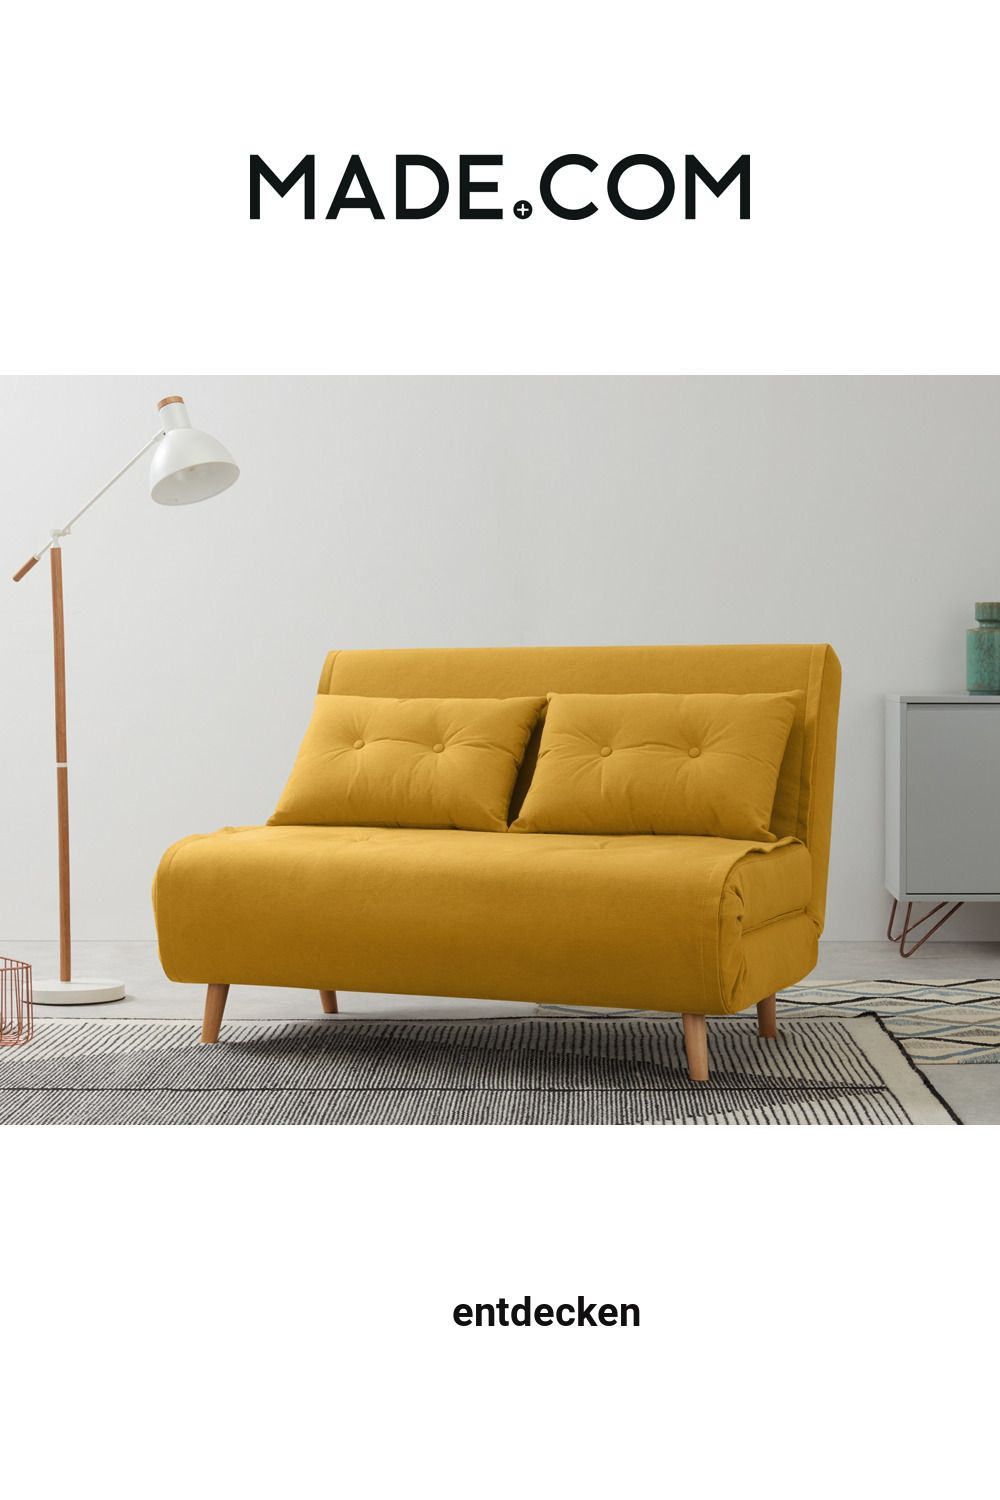 Made Schlafsofa Gelb In 2020 Sofa Small Sofa Yellow Sofa